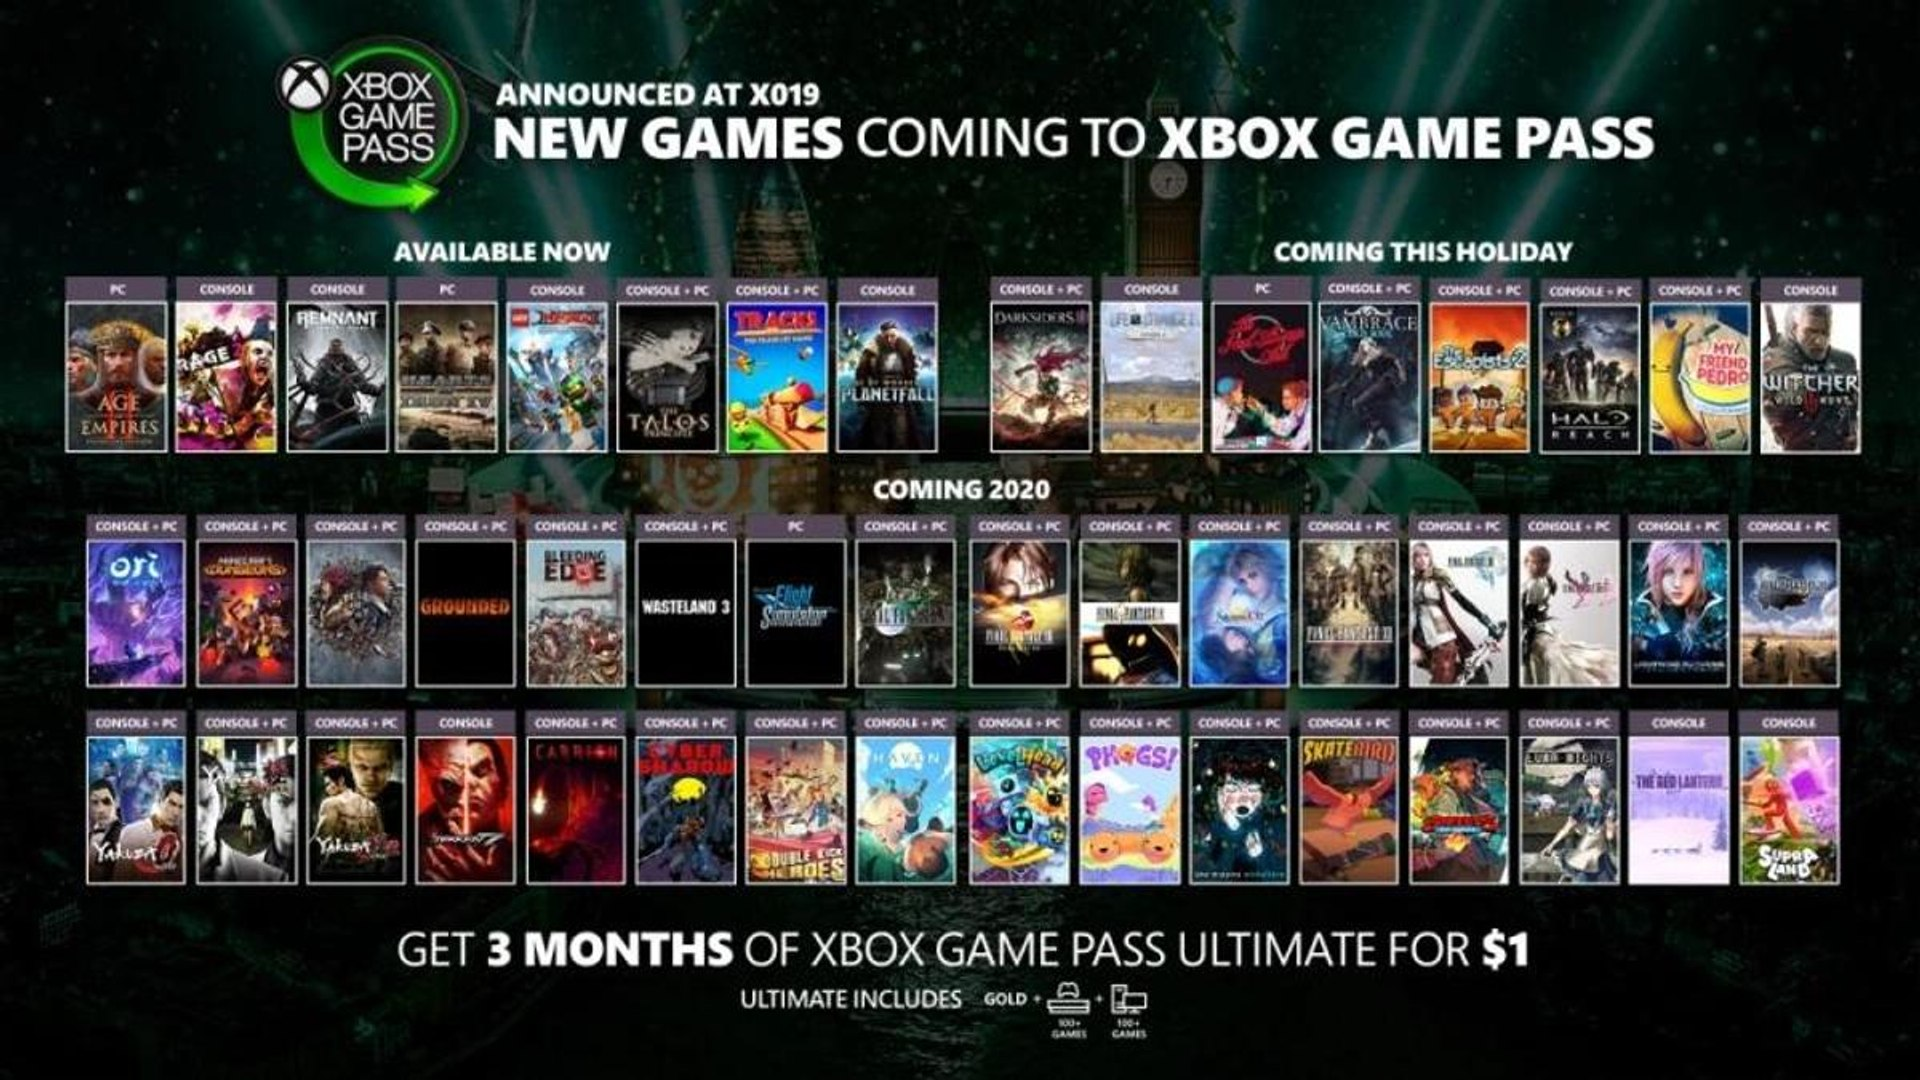 Xbox Gold Games February 2020.Xbox Game Pass Announcing New Games X019 Official Xbox Pc Games 2019 2020